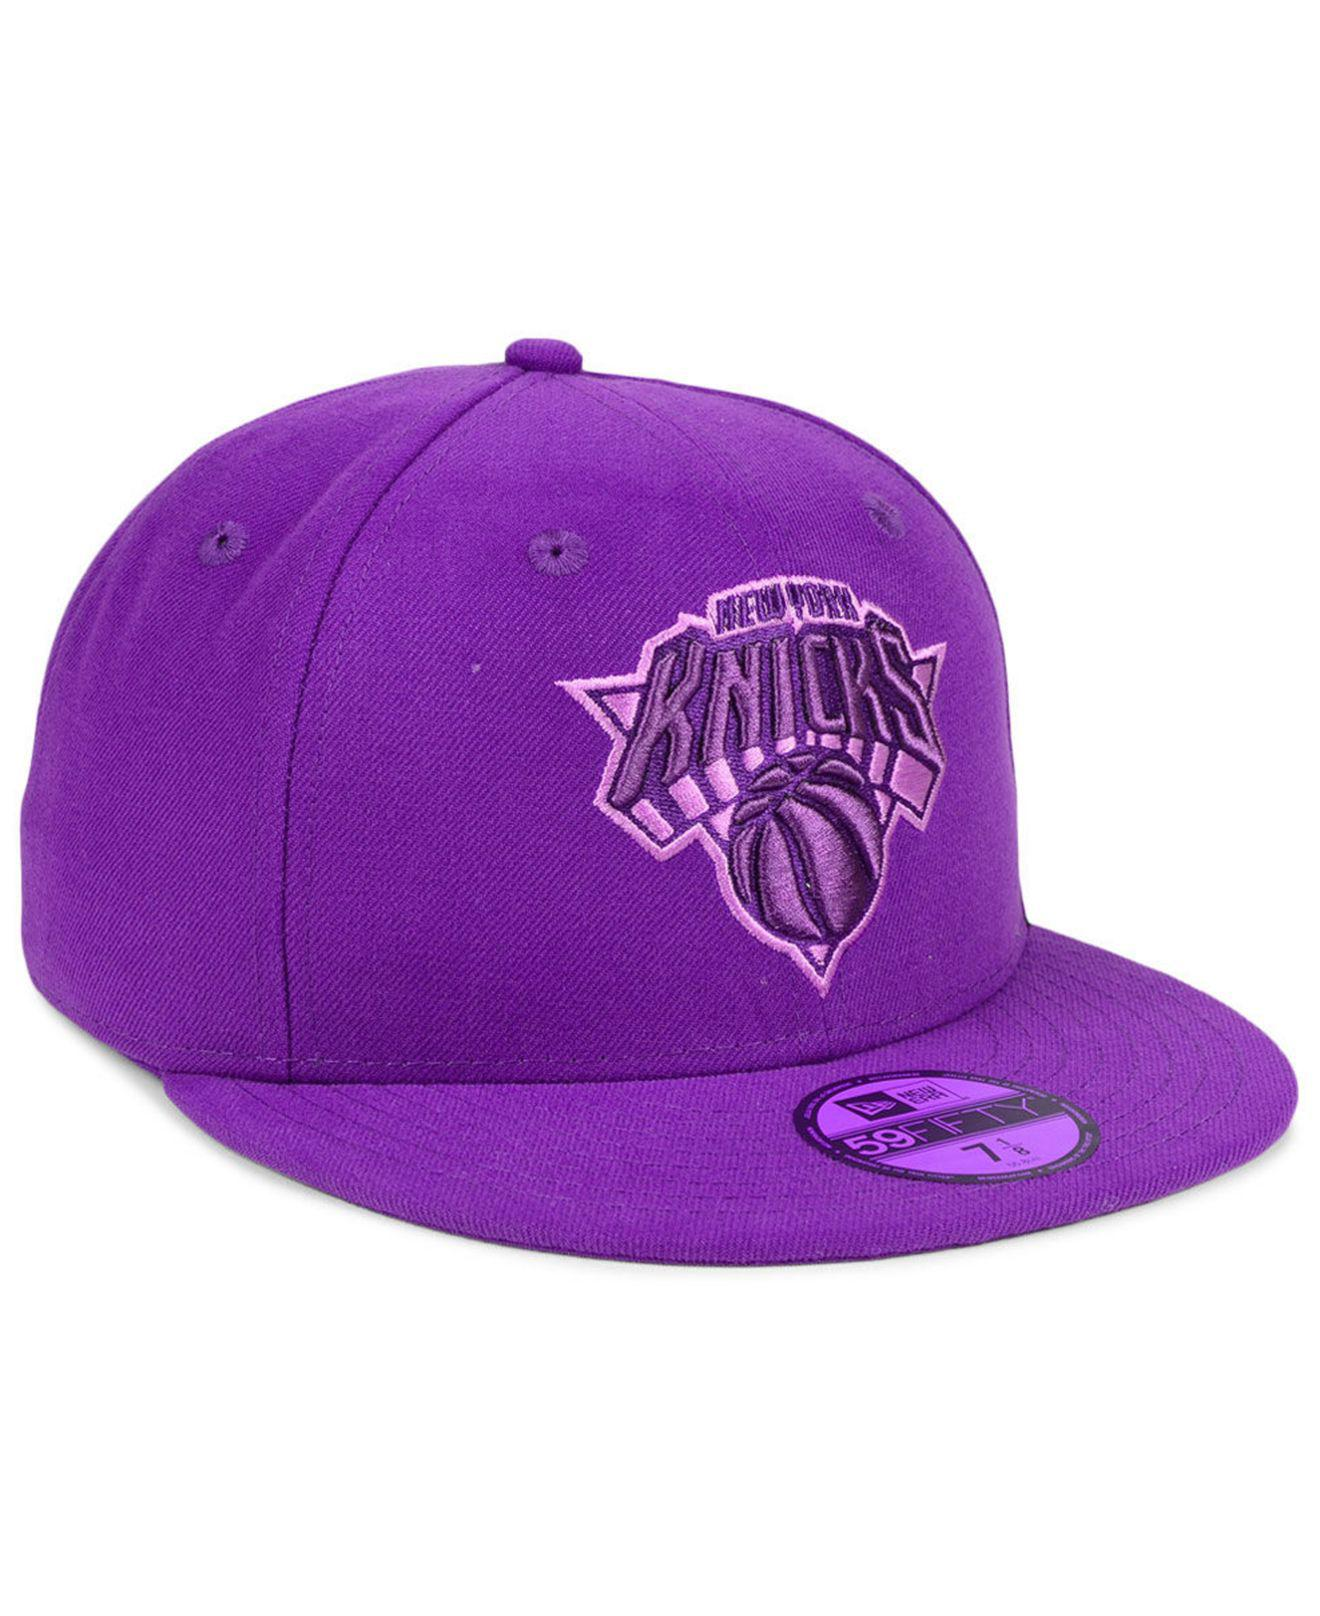 b0b0983ec01c2 ... where to buy new york knicks color prism pack 59fifty fitted cap for men  lyst.